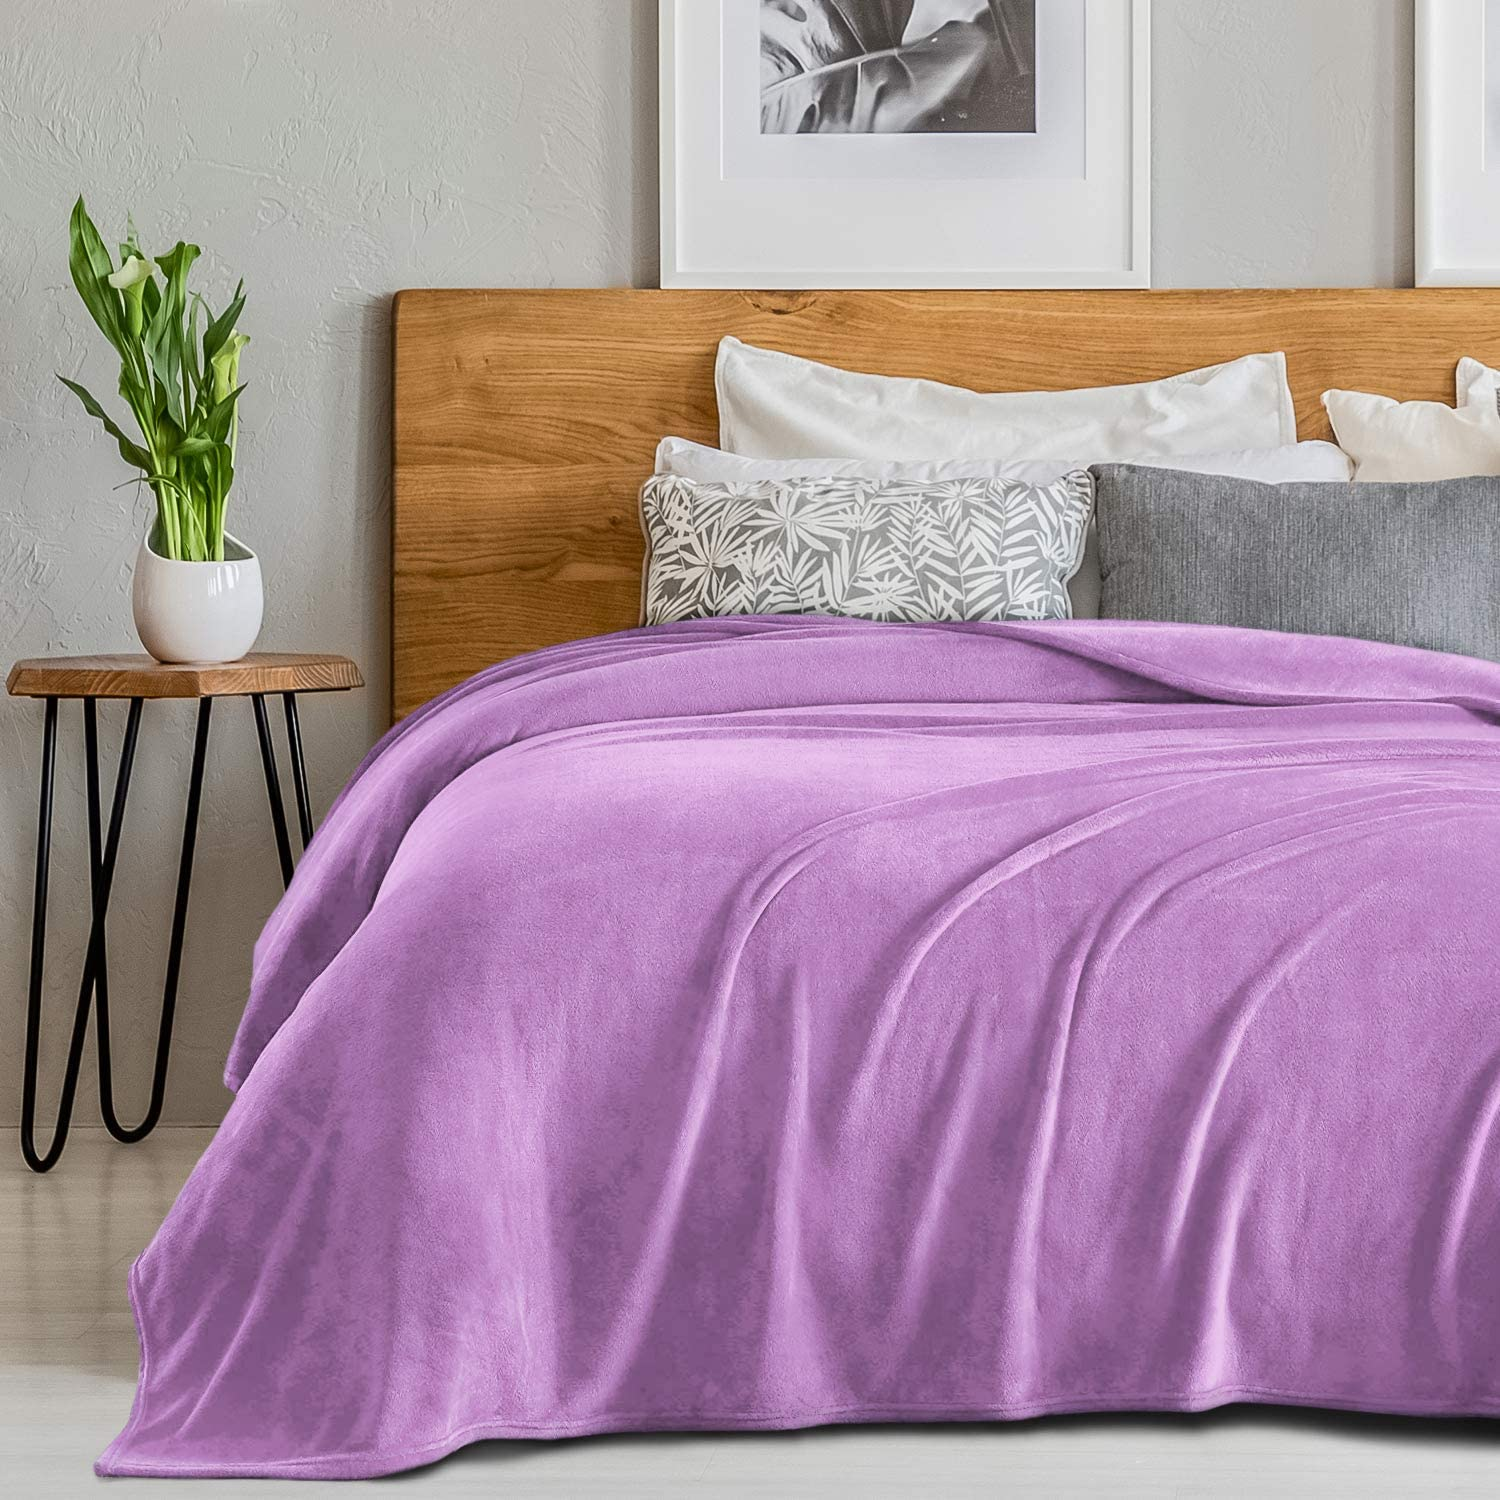 """SEDONA HOUSE Flannel Fleece Blanket 280GSM Luxury Microfiber Flannel Super Soft Warm Fuzzy Cozy Lightweight Blanket for Bed Couch or Car Color Purple Size Throw 50""""x60"""""""